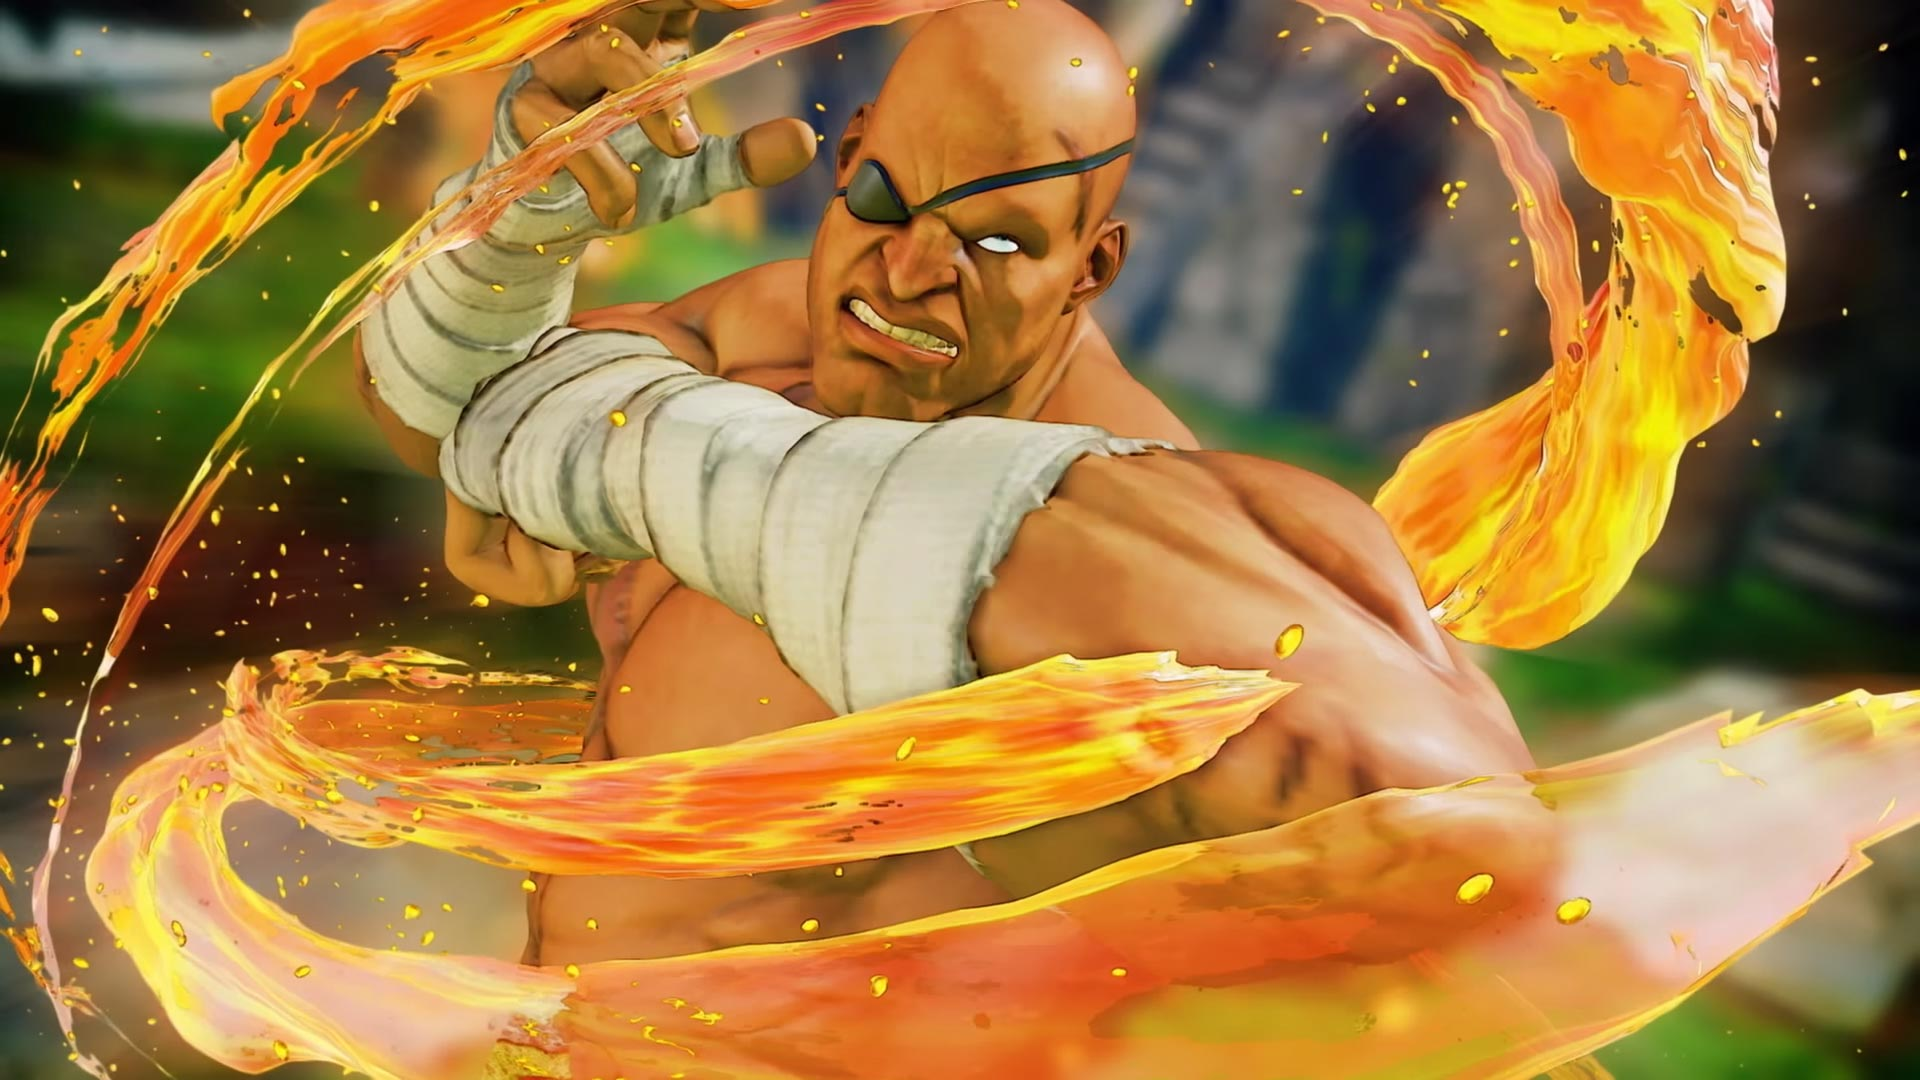 G and Sagat Street Fighter 5: Arcade Edition 5 out of 15 image gallery